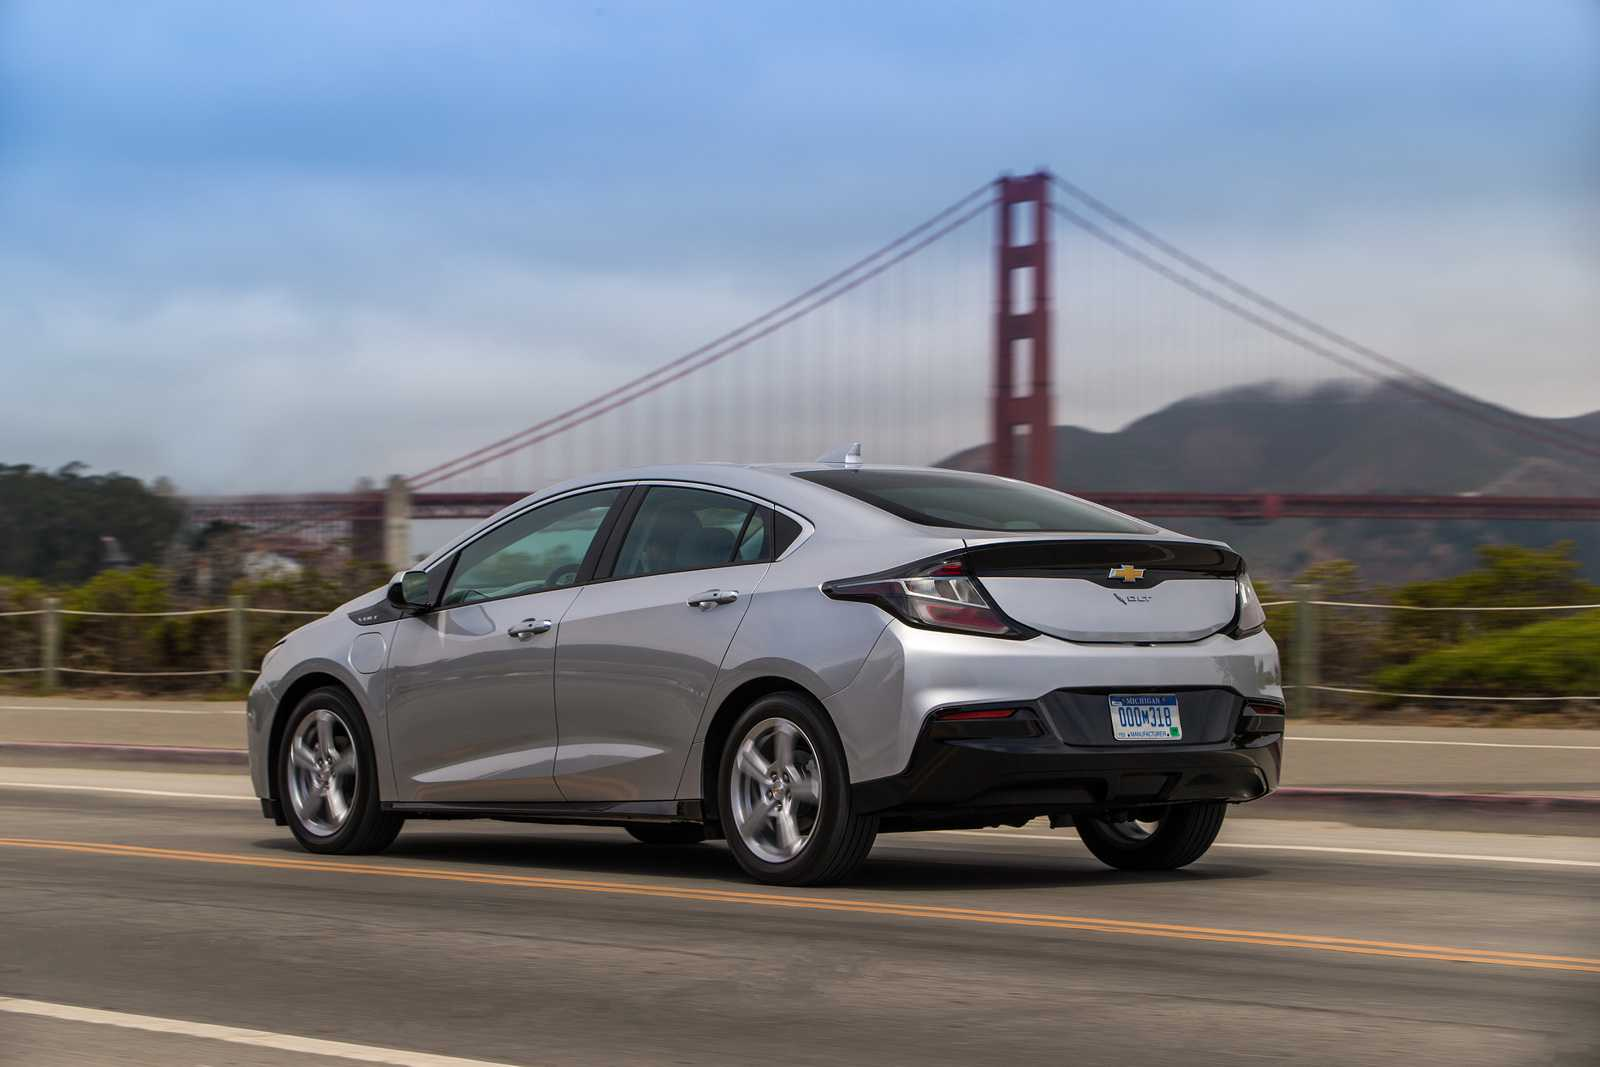 2016 Chevrolet Volt – More Mileage, Space and Great Budget EV